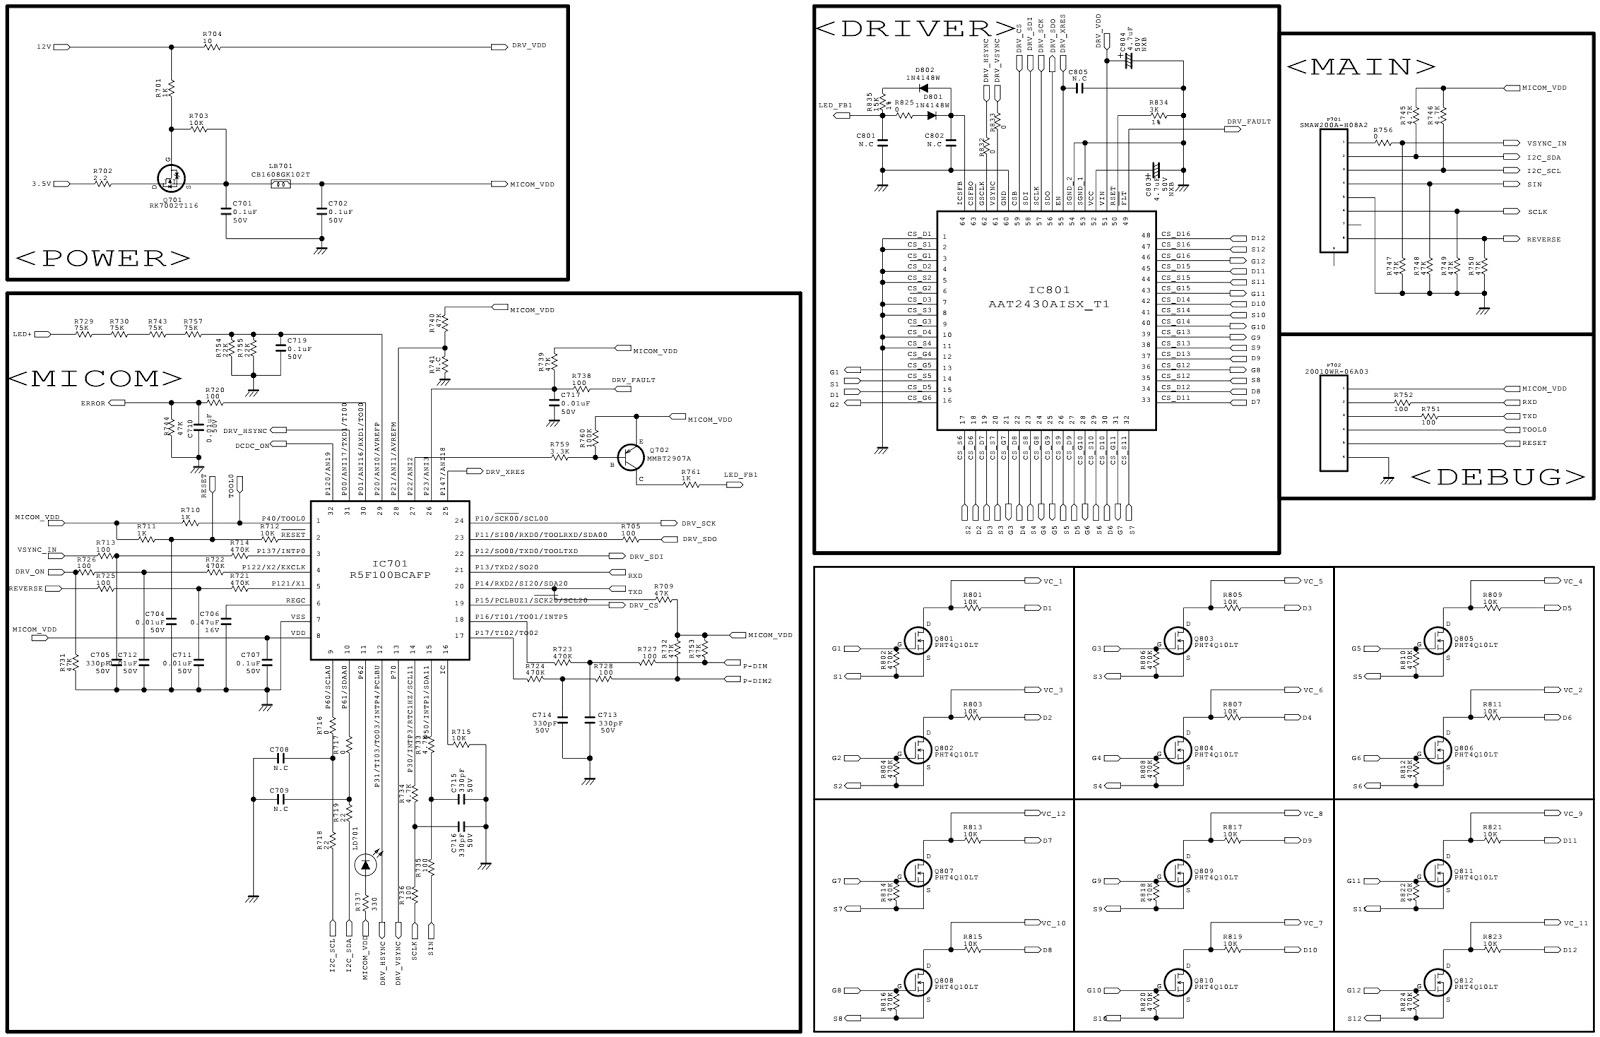 lg eay62512702 smps circuit diagram  u2013 used with lg47lm8600  u2013 lg47lm6700 led tvs